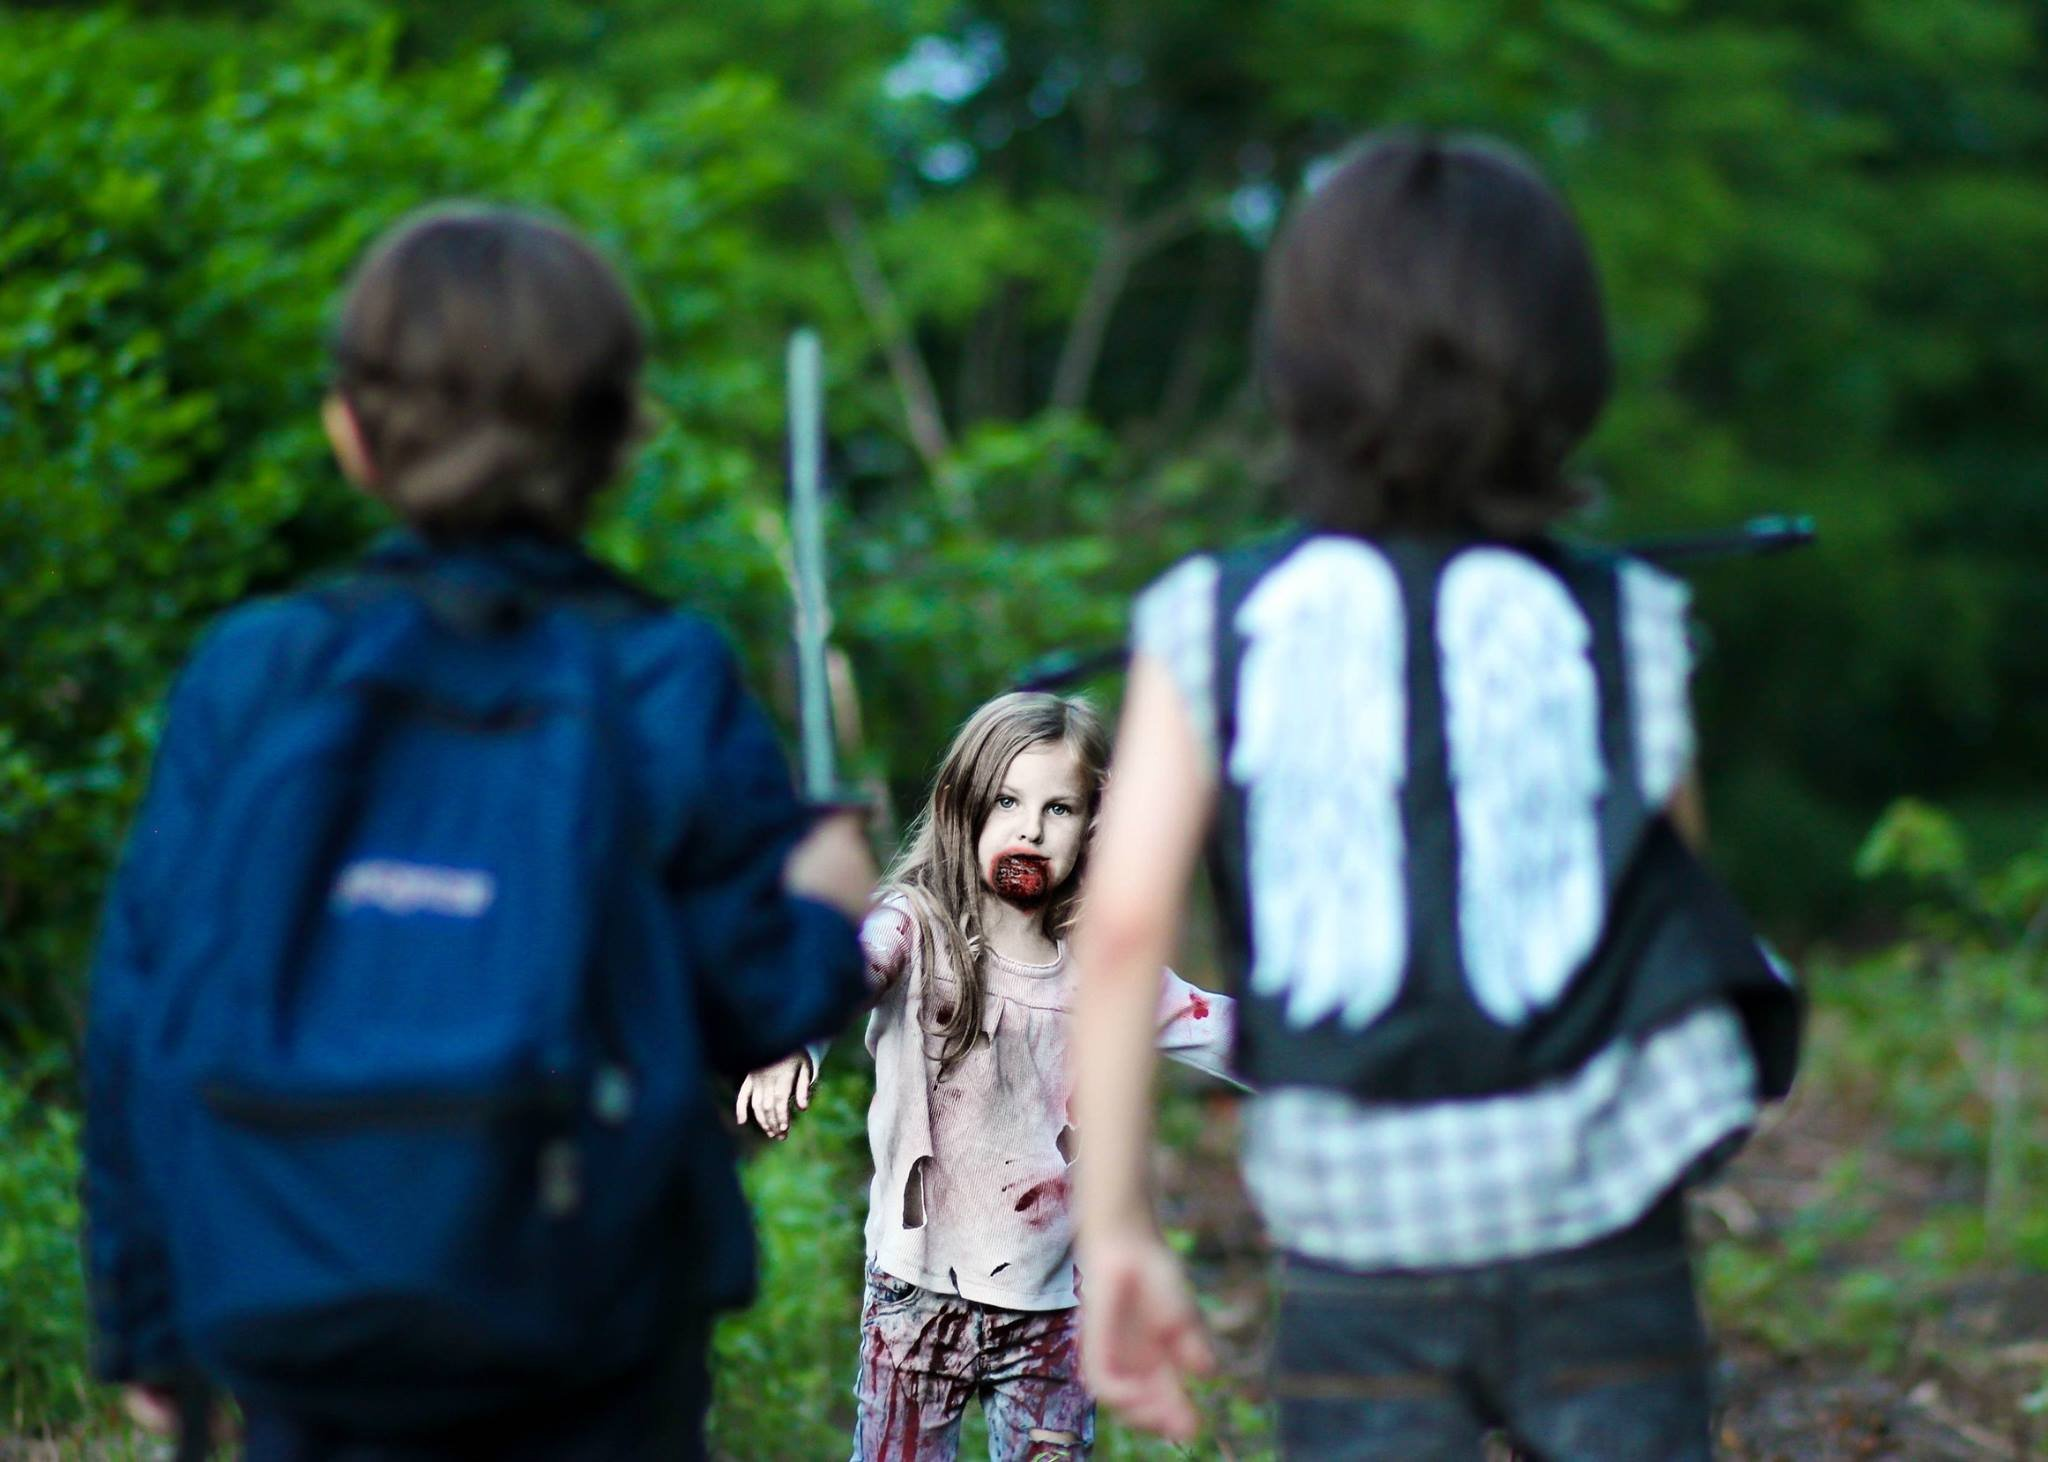 Aaron Daryl Dixon Confront Walker - Not Everyone Is Happy About This Walking Dead Photo Shoot